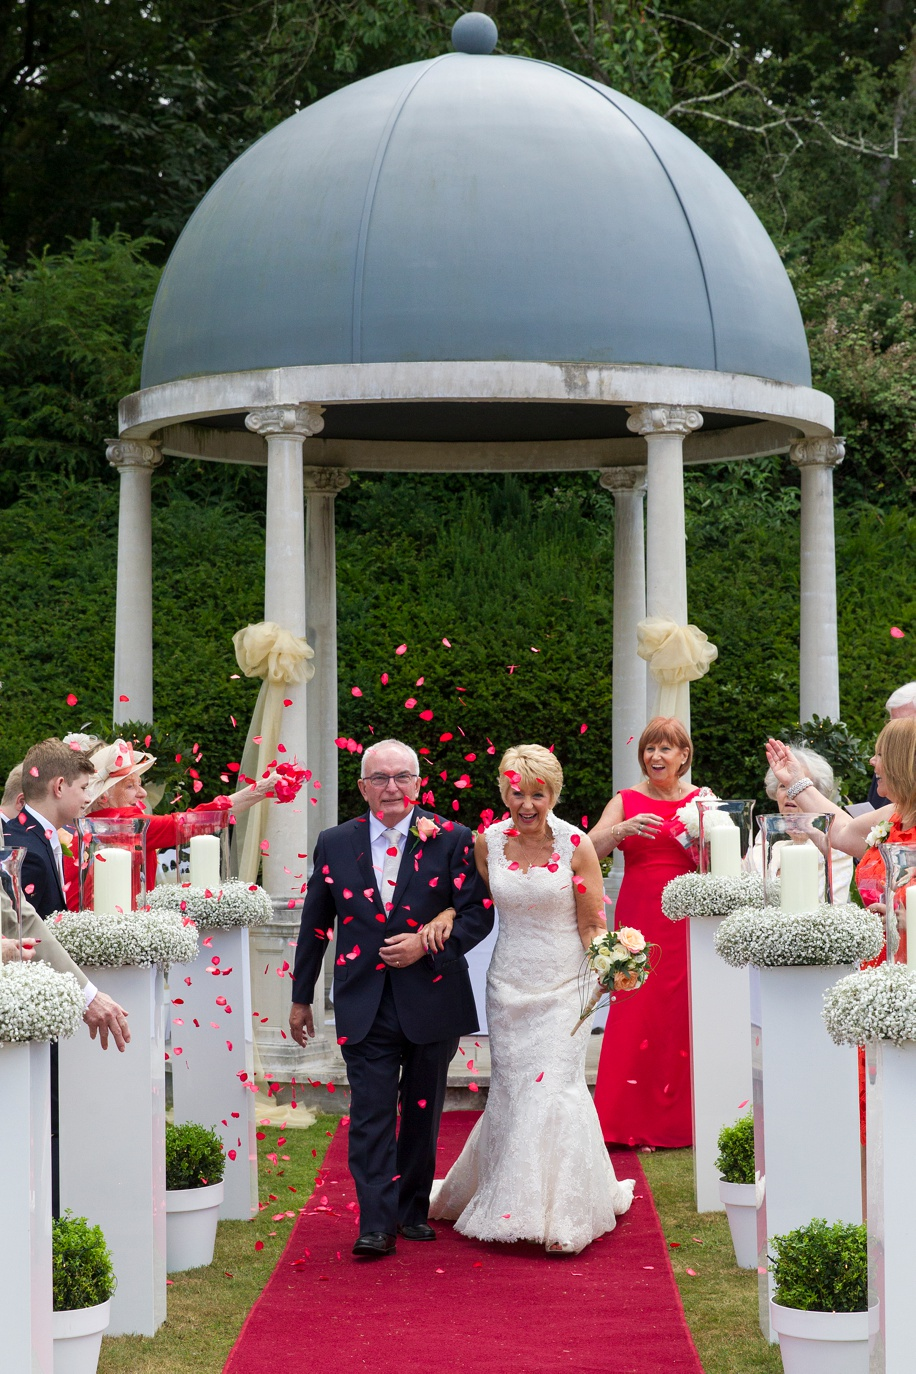 Stunning New Forest wedding photographs in The Forest garden at Rhinefield House - outdoor ceremony - Martin Bell Photography